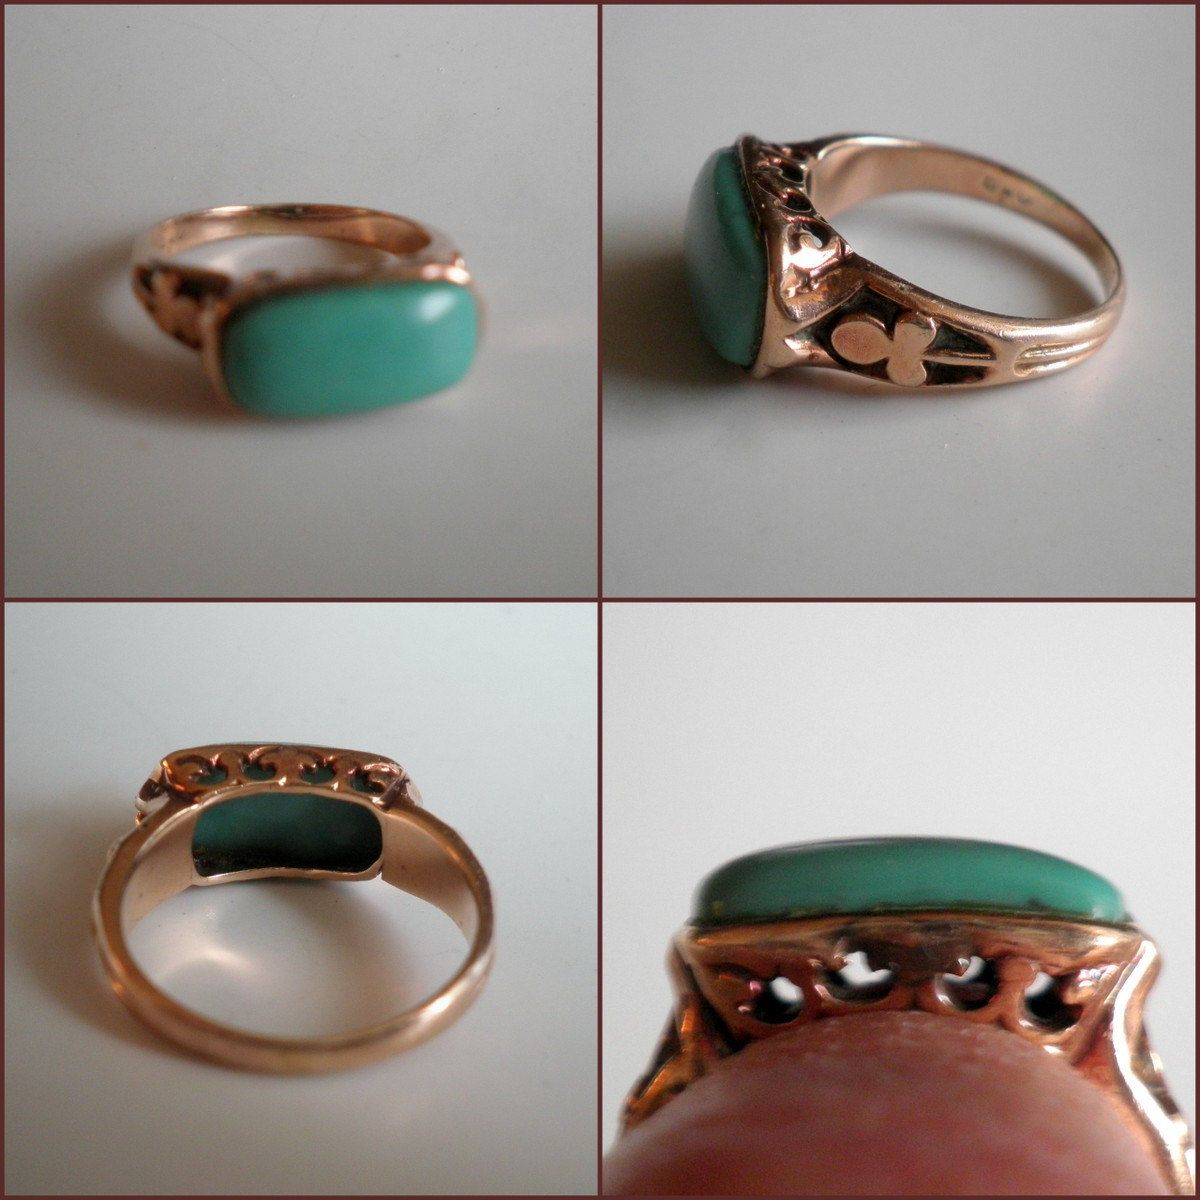 Vintge Antique Art Deco 10K Rose Gold Filigree Ring with Blue Green Stone. $139.00, via Etsy.